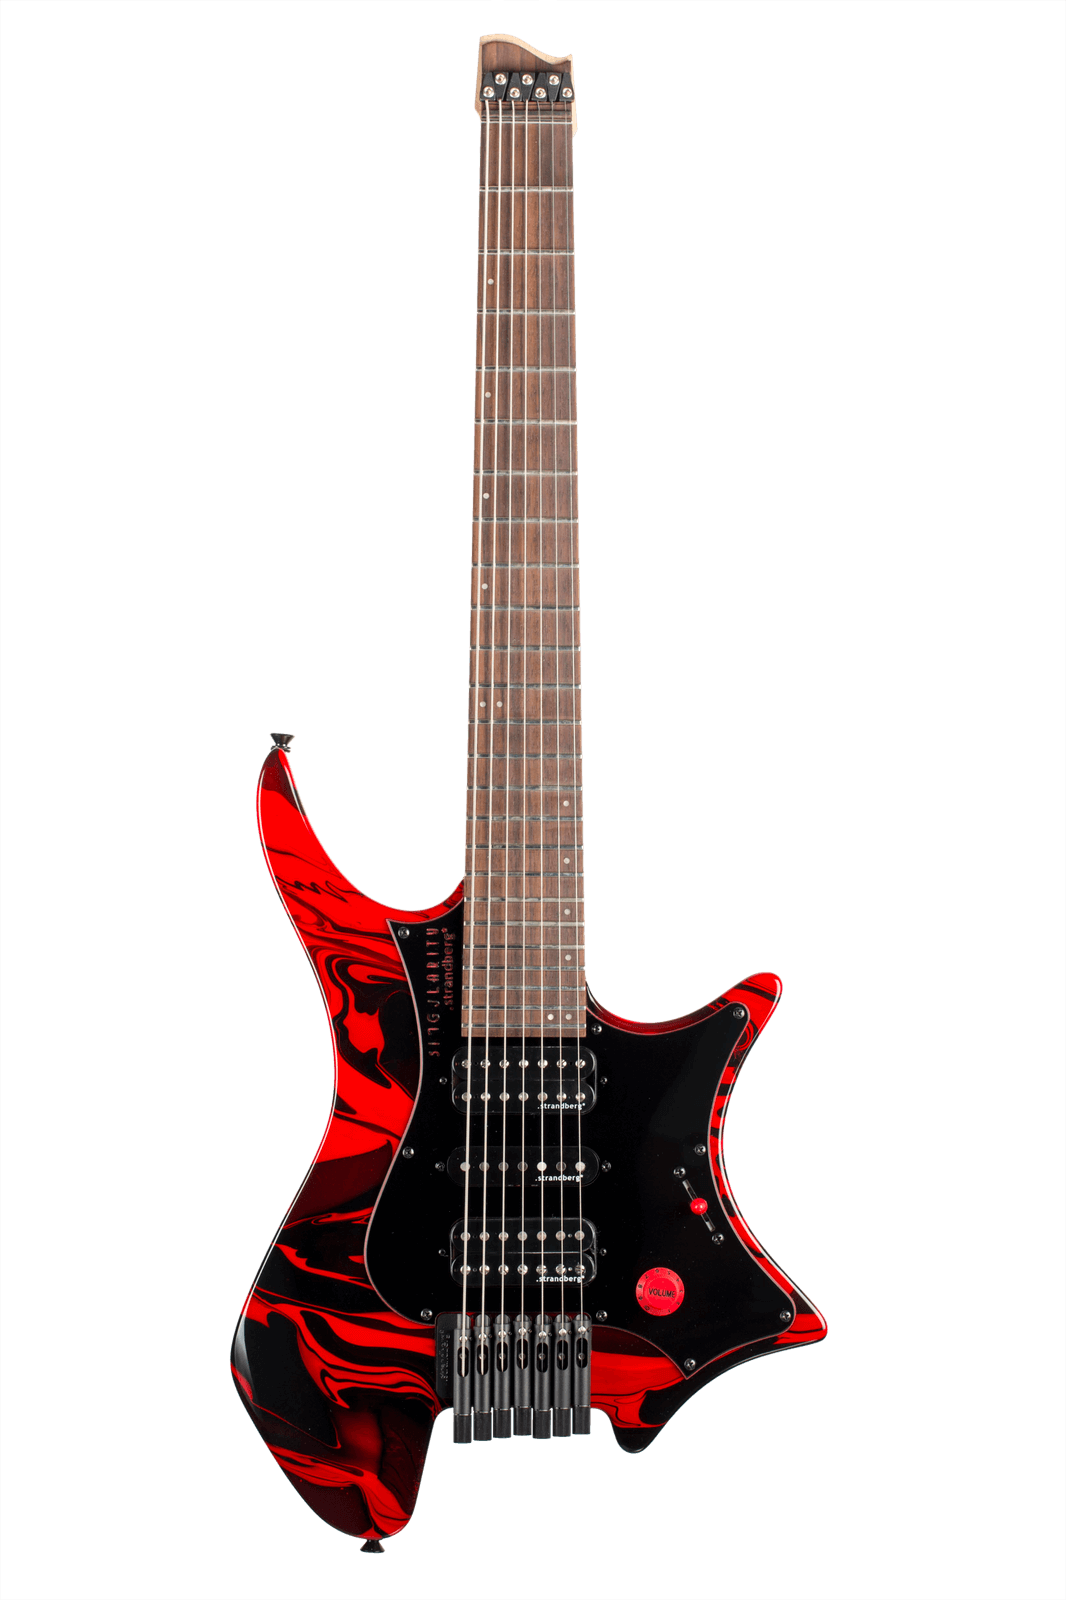 Boden Singularity 7-string guitar Red Swirl